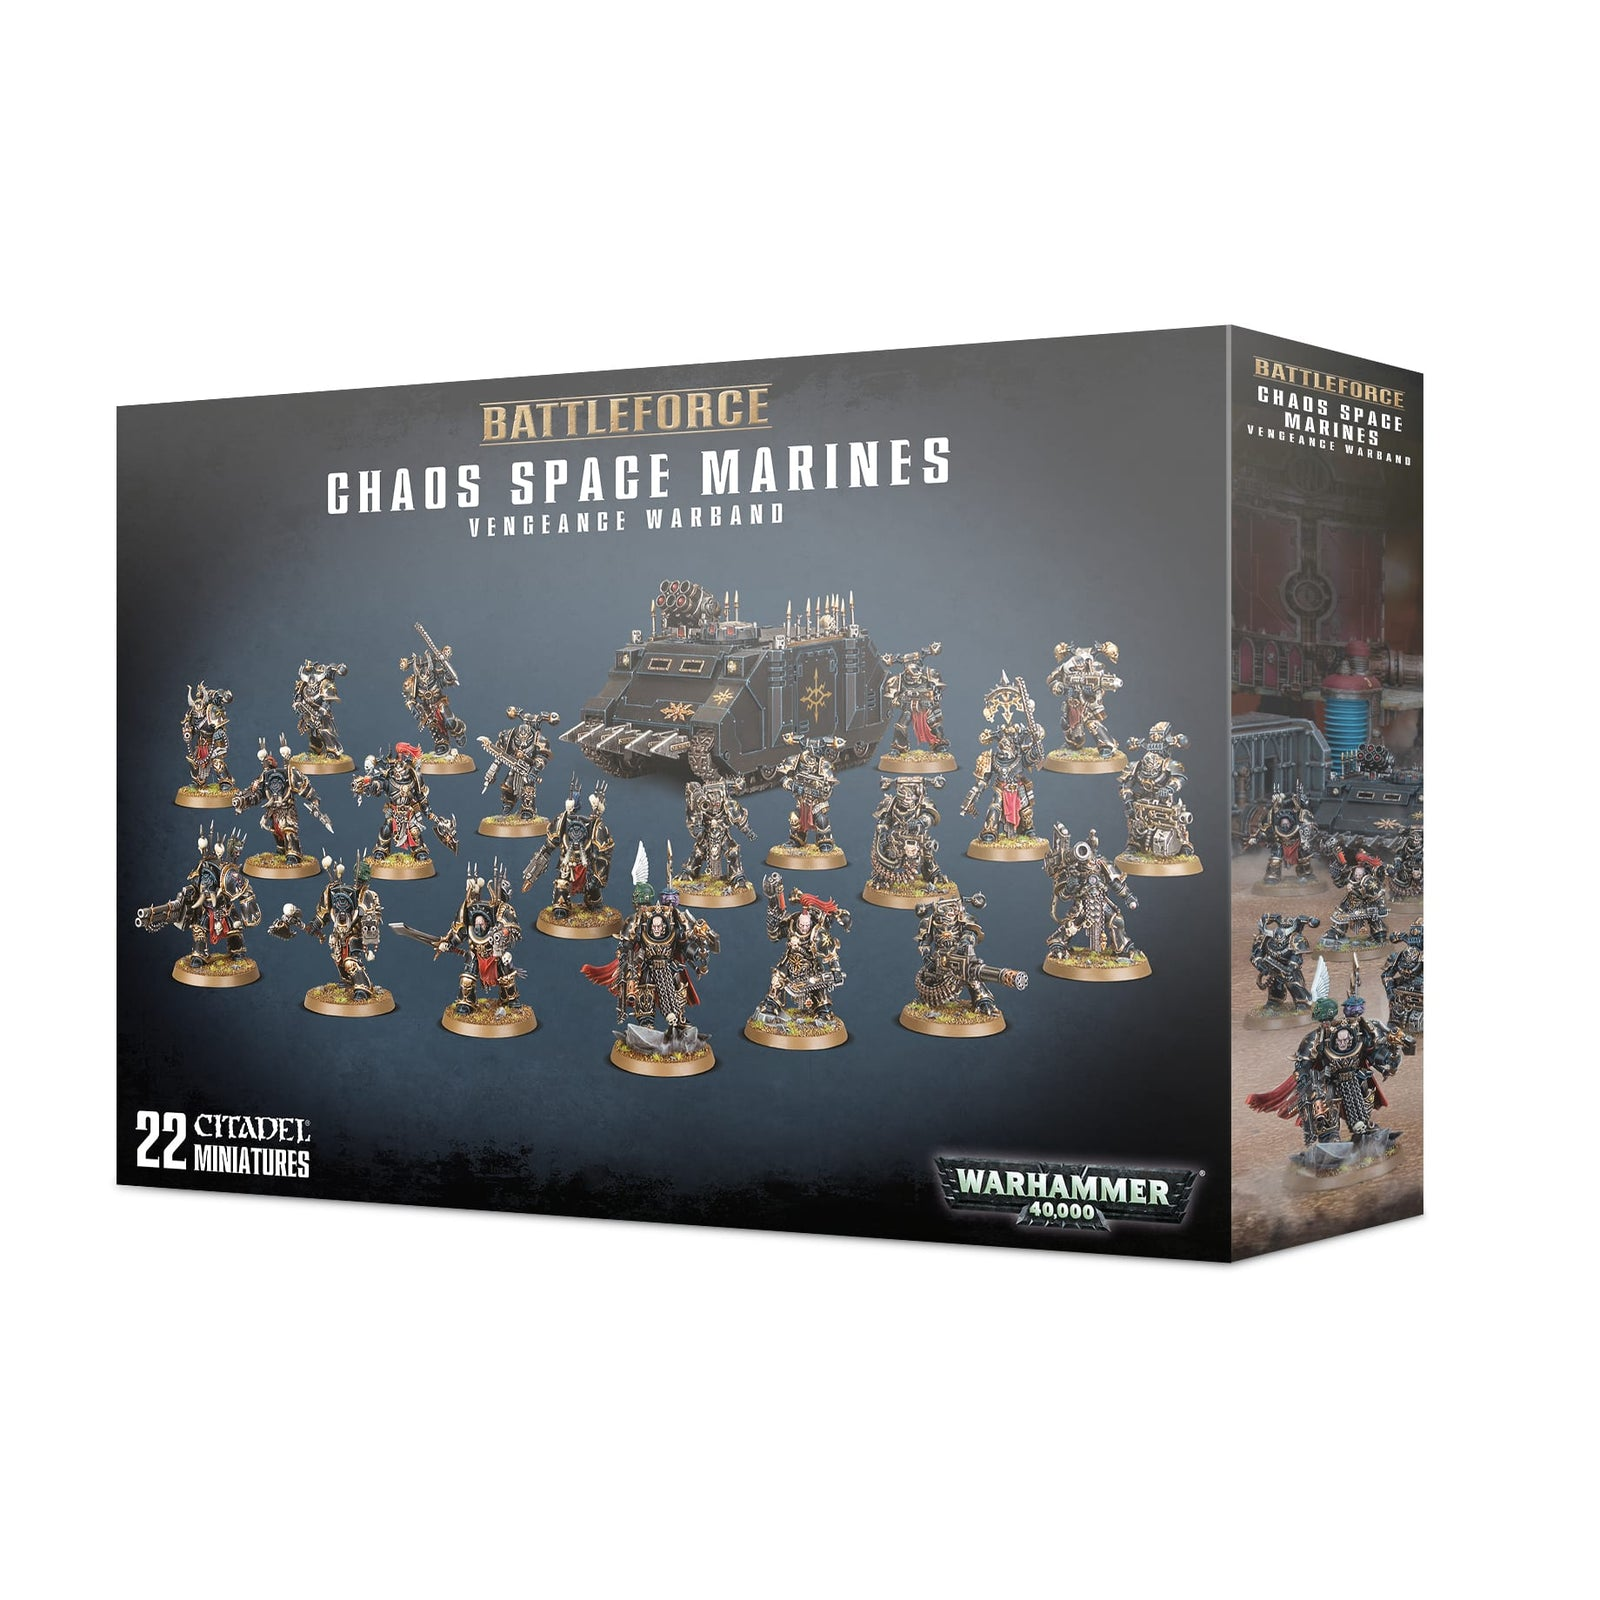 Battleforce: Chaos Space Marines: Vengeance Warband